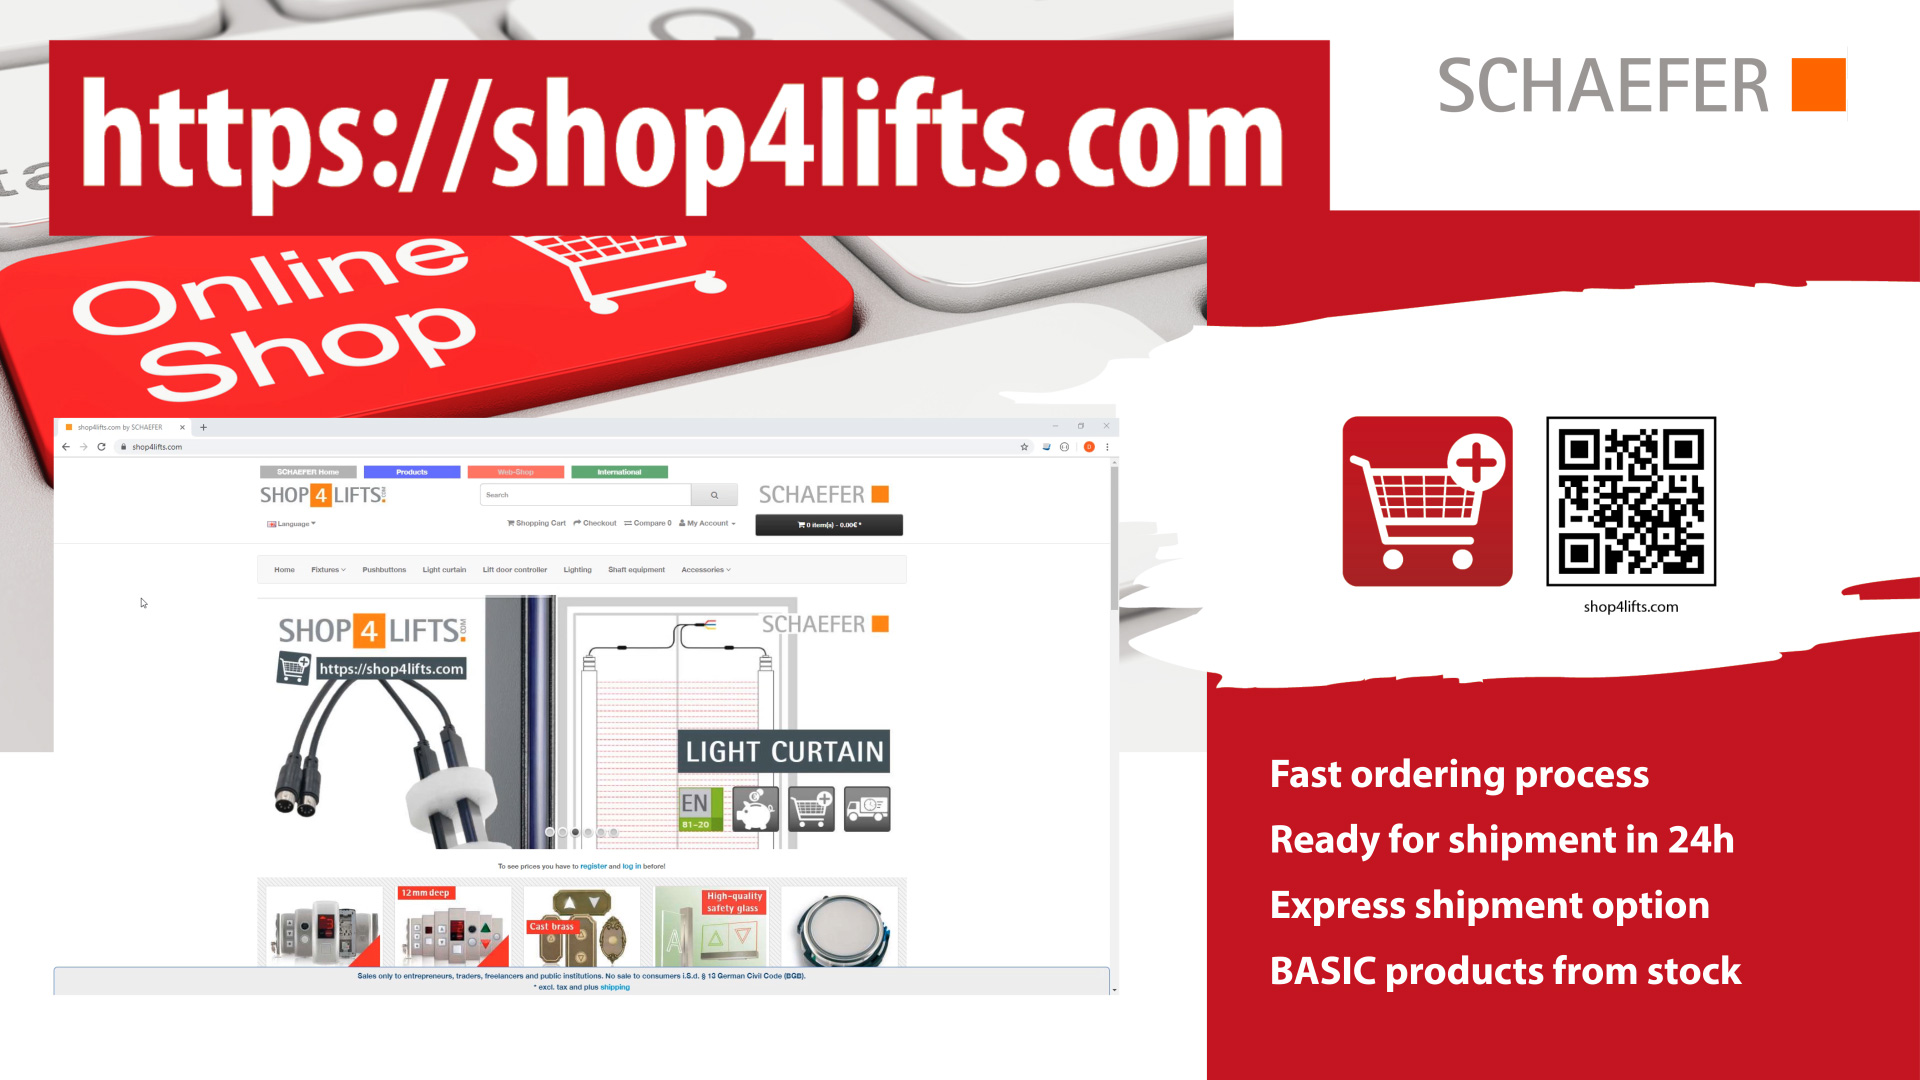 shop4lifts.com